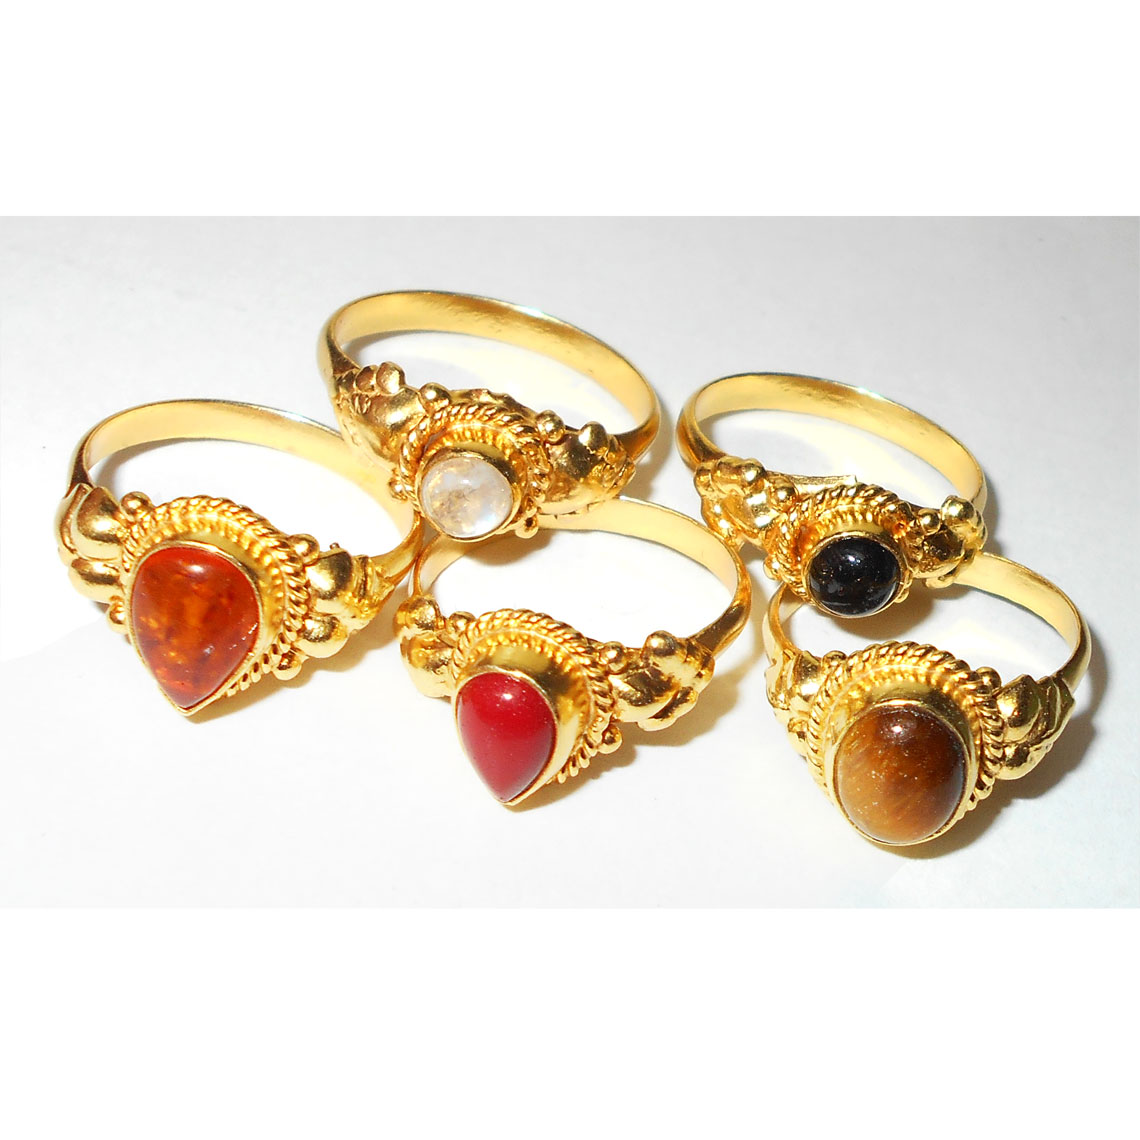 Ladies Designer Rings | Mix Cab Stones F Bvp980 Stylish Fashion Girl Finger Rings Baby